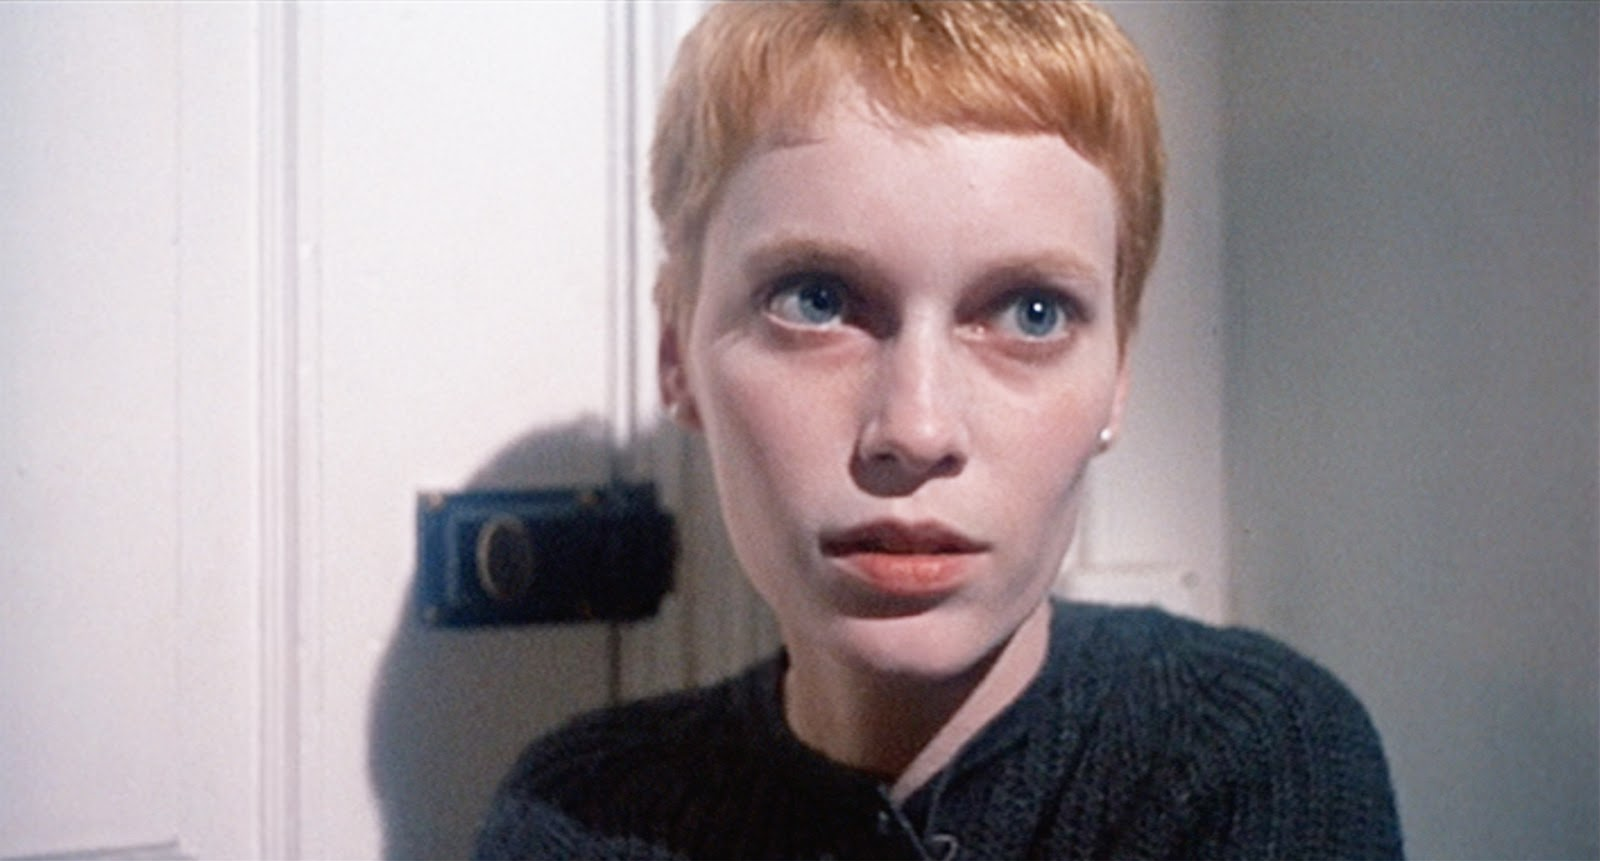 When Roman Polanski's first American film, Rosemary's Baby, made